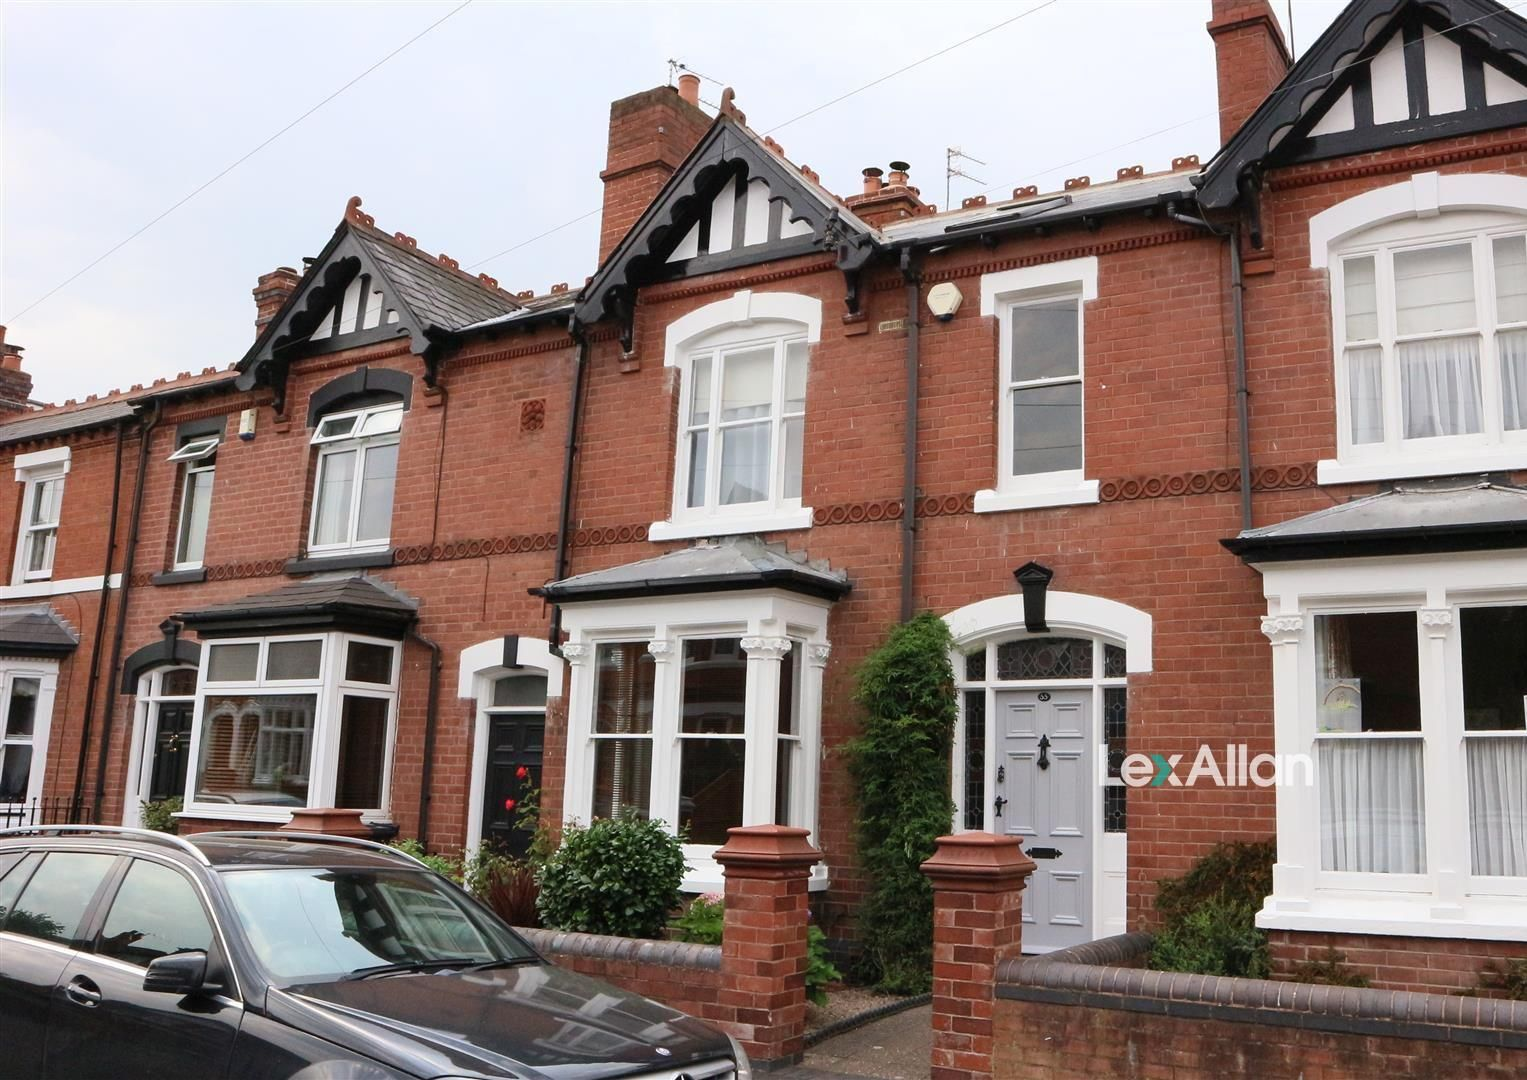 4 bed terraced for sale in Old Quarter, DY8